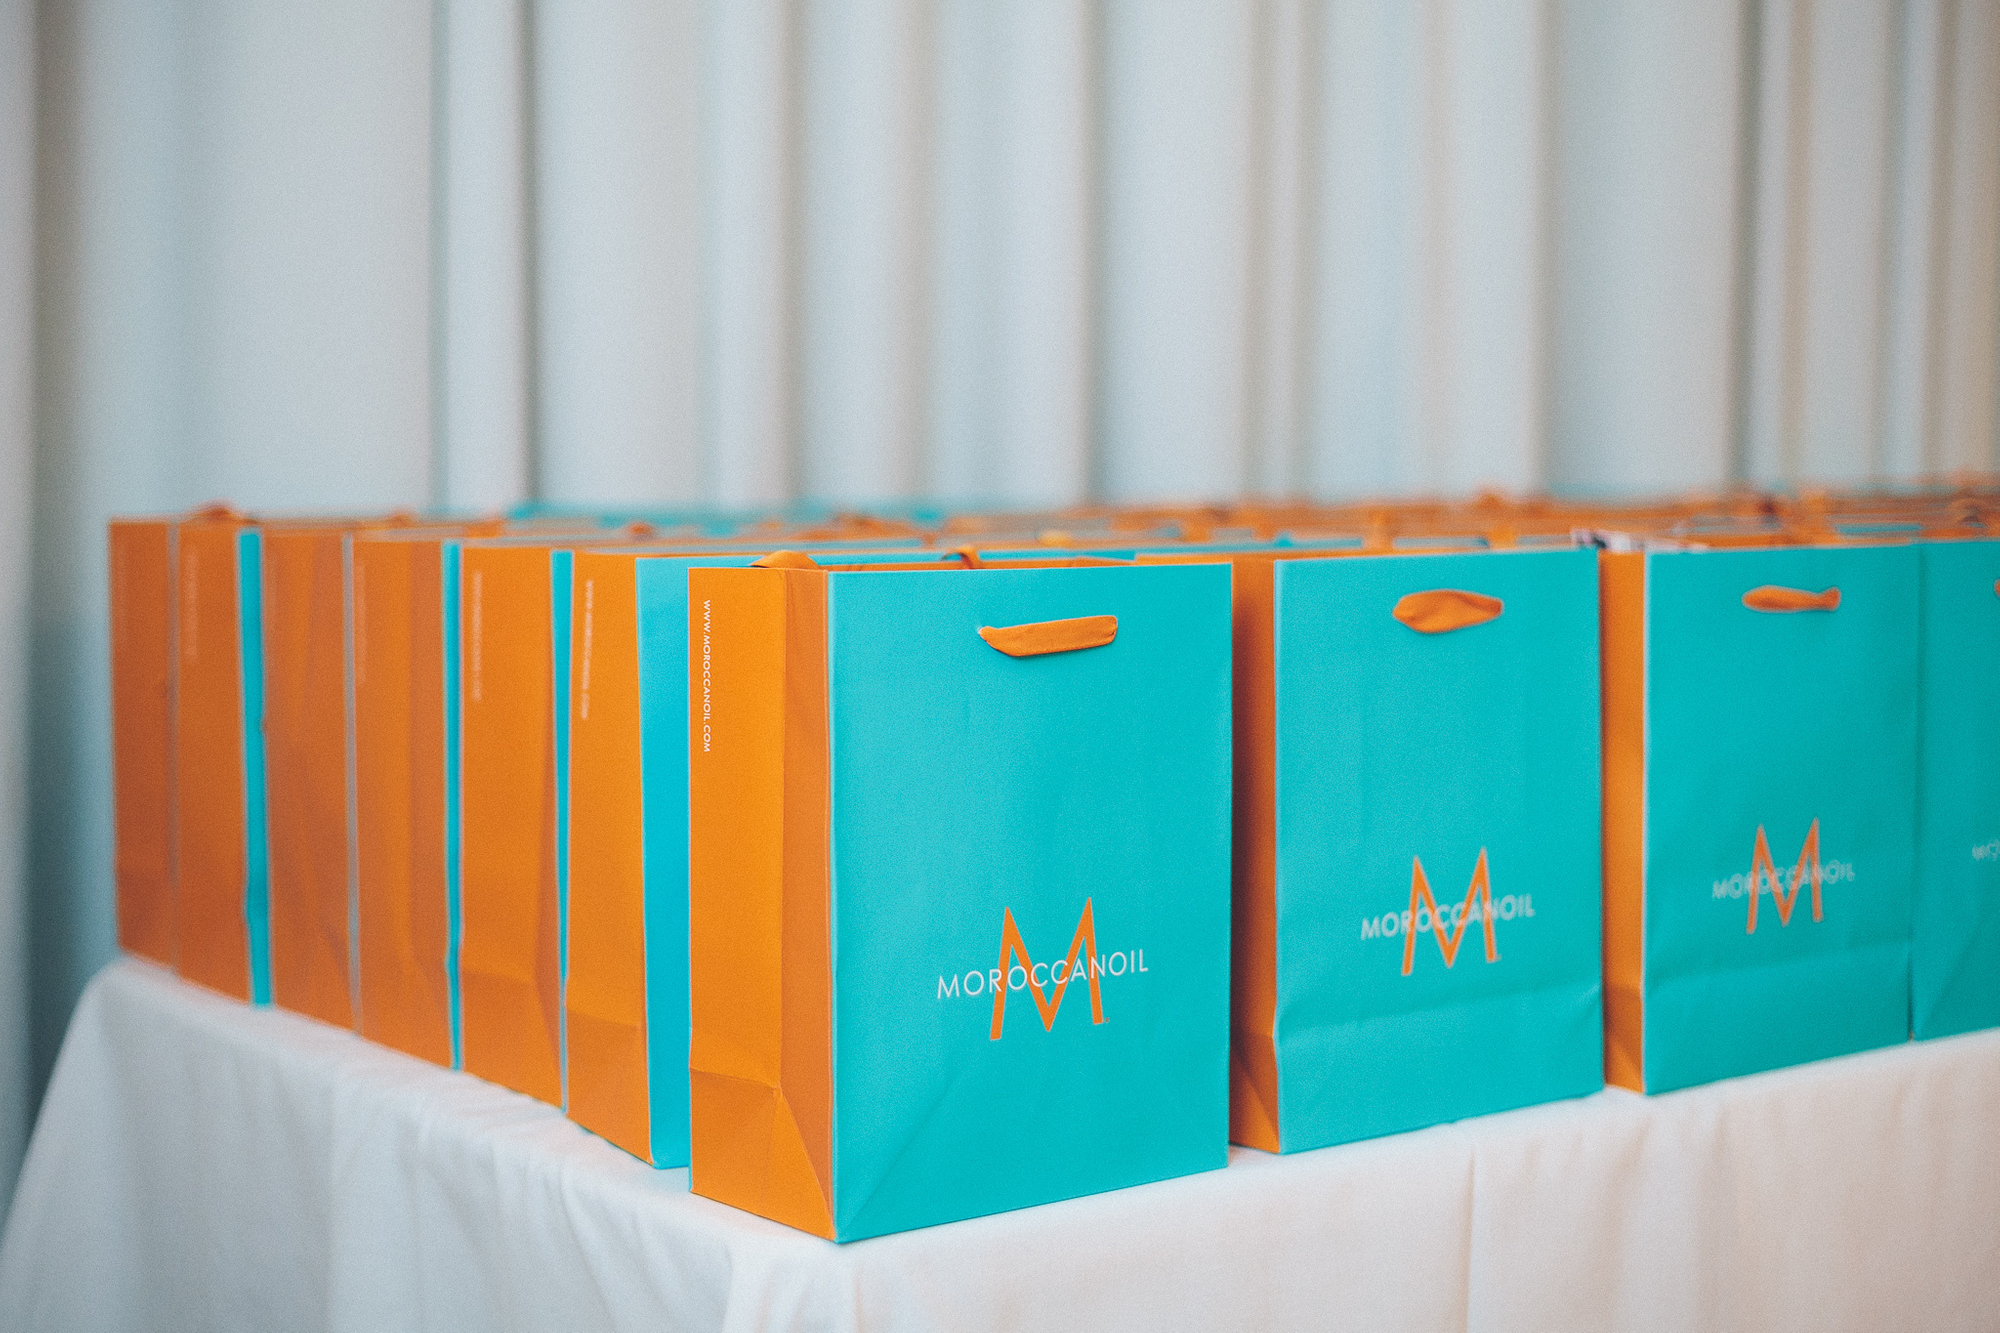 Chez Badeaux Coils and Curls Beauty Lounge at Sagamore, The Art Hotel. Moroccan Oil Clinic.